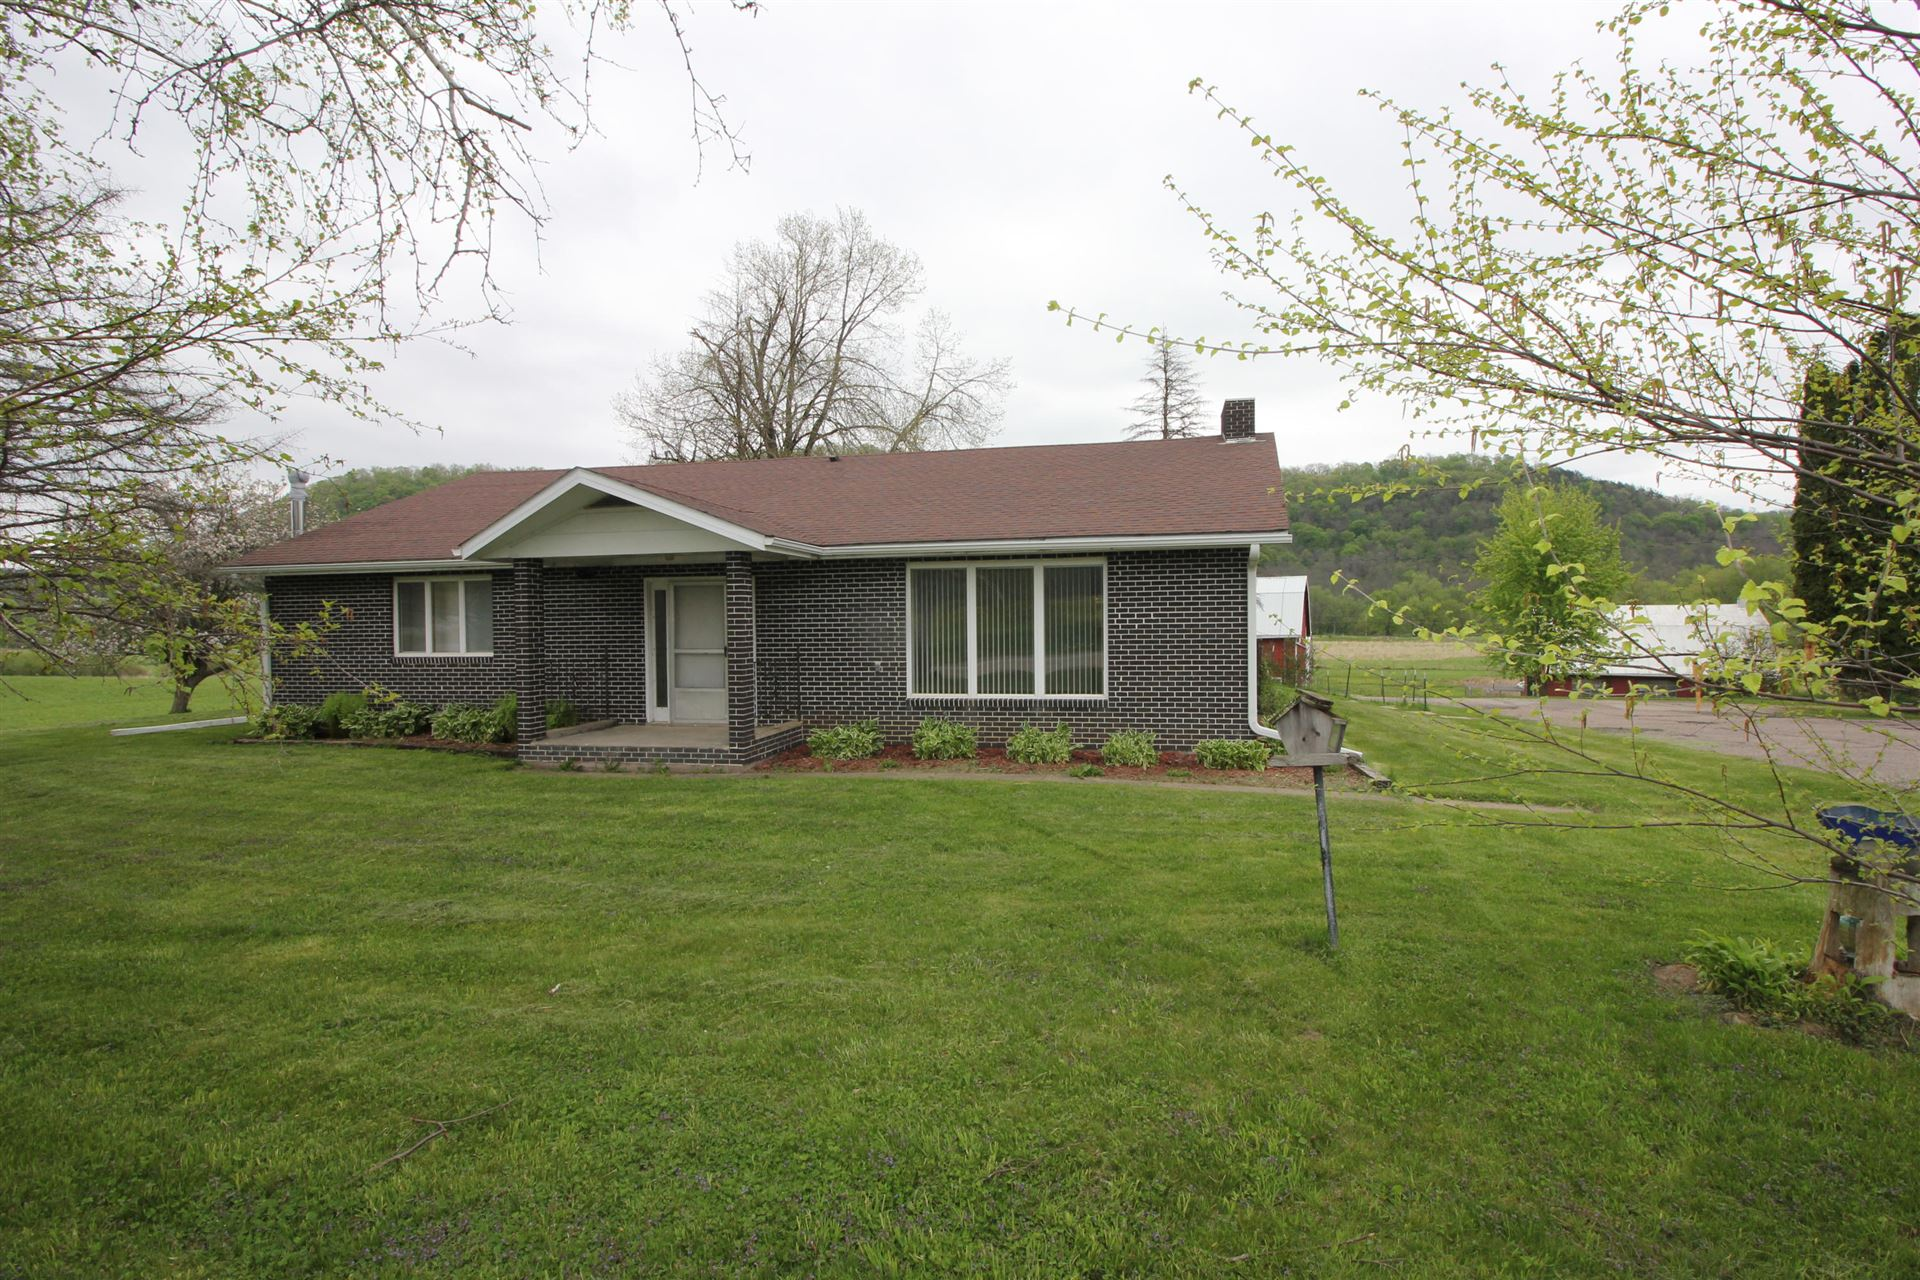 10643 State Highway 131, Forest, WI 54664 - MLS#: 1677507